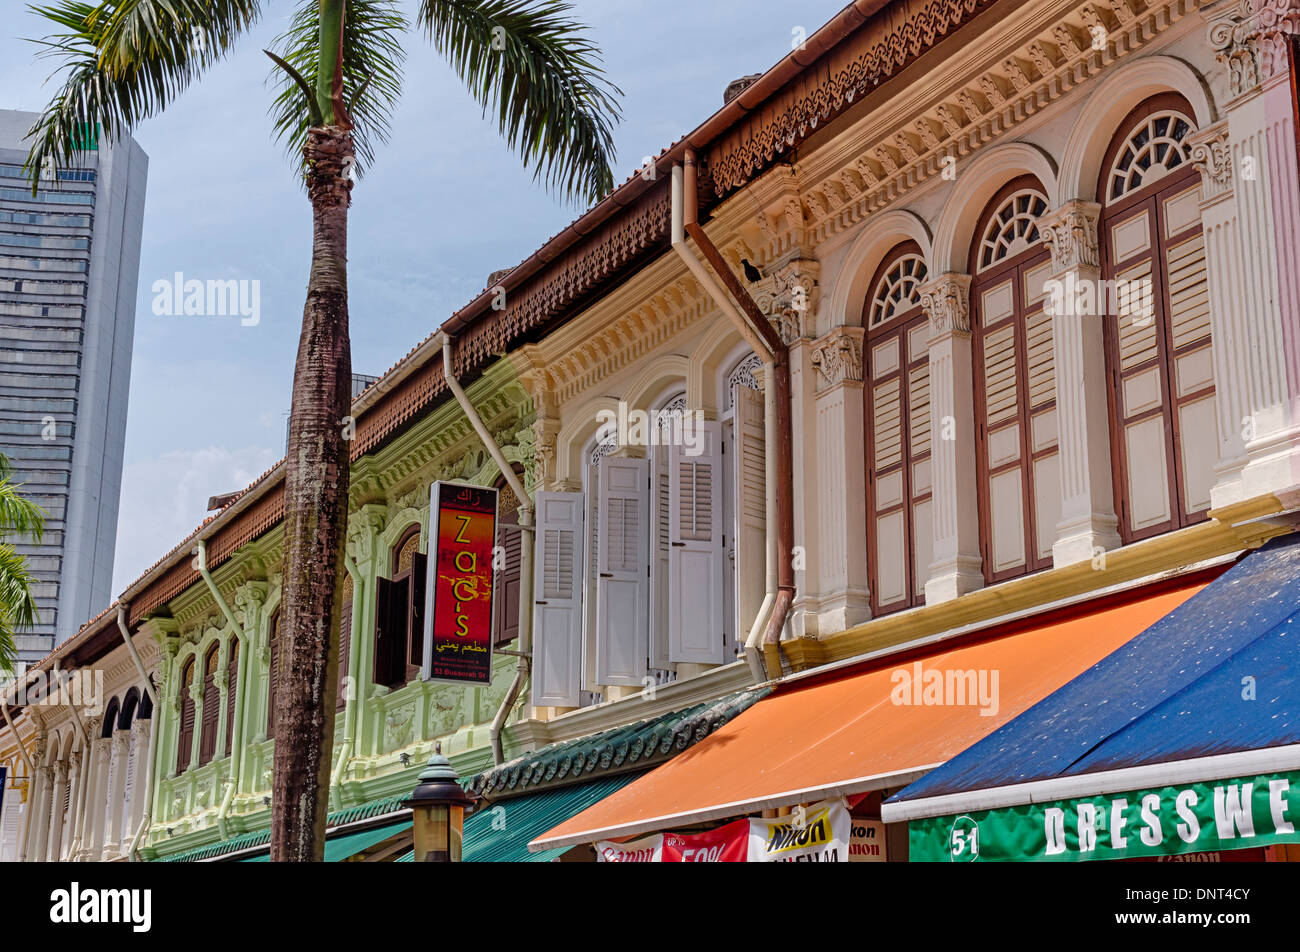 Line up of Colorful Building at Kampong Glam, Singapore - Stock Image